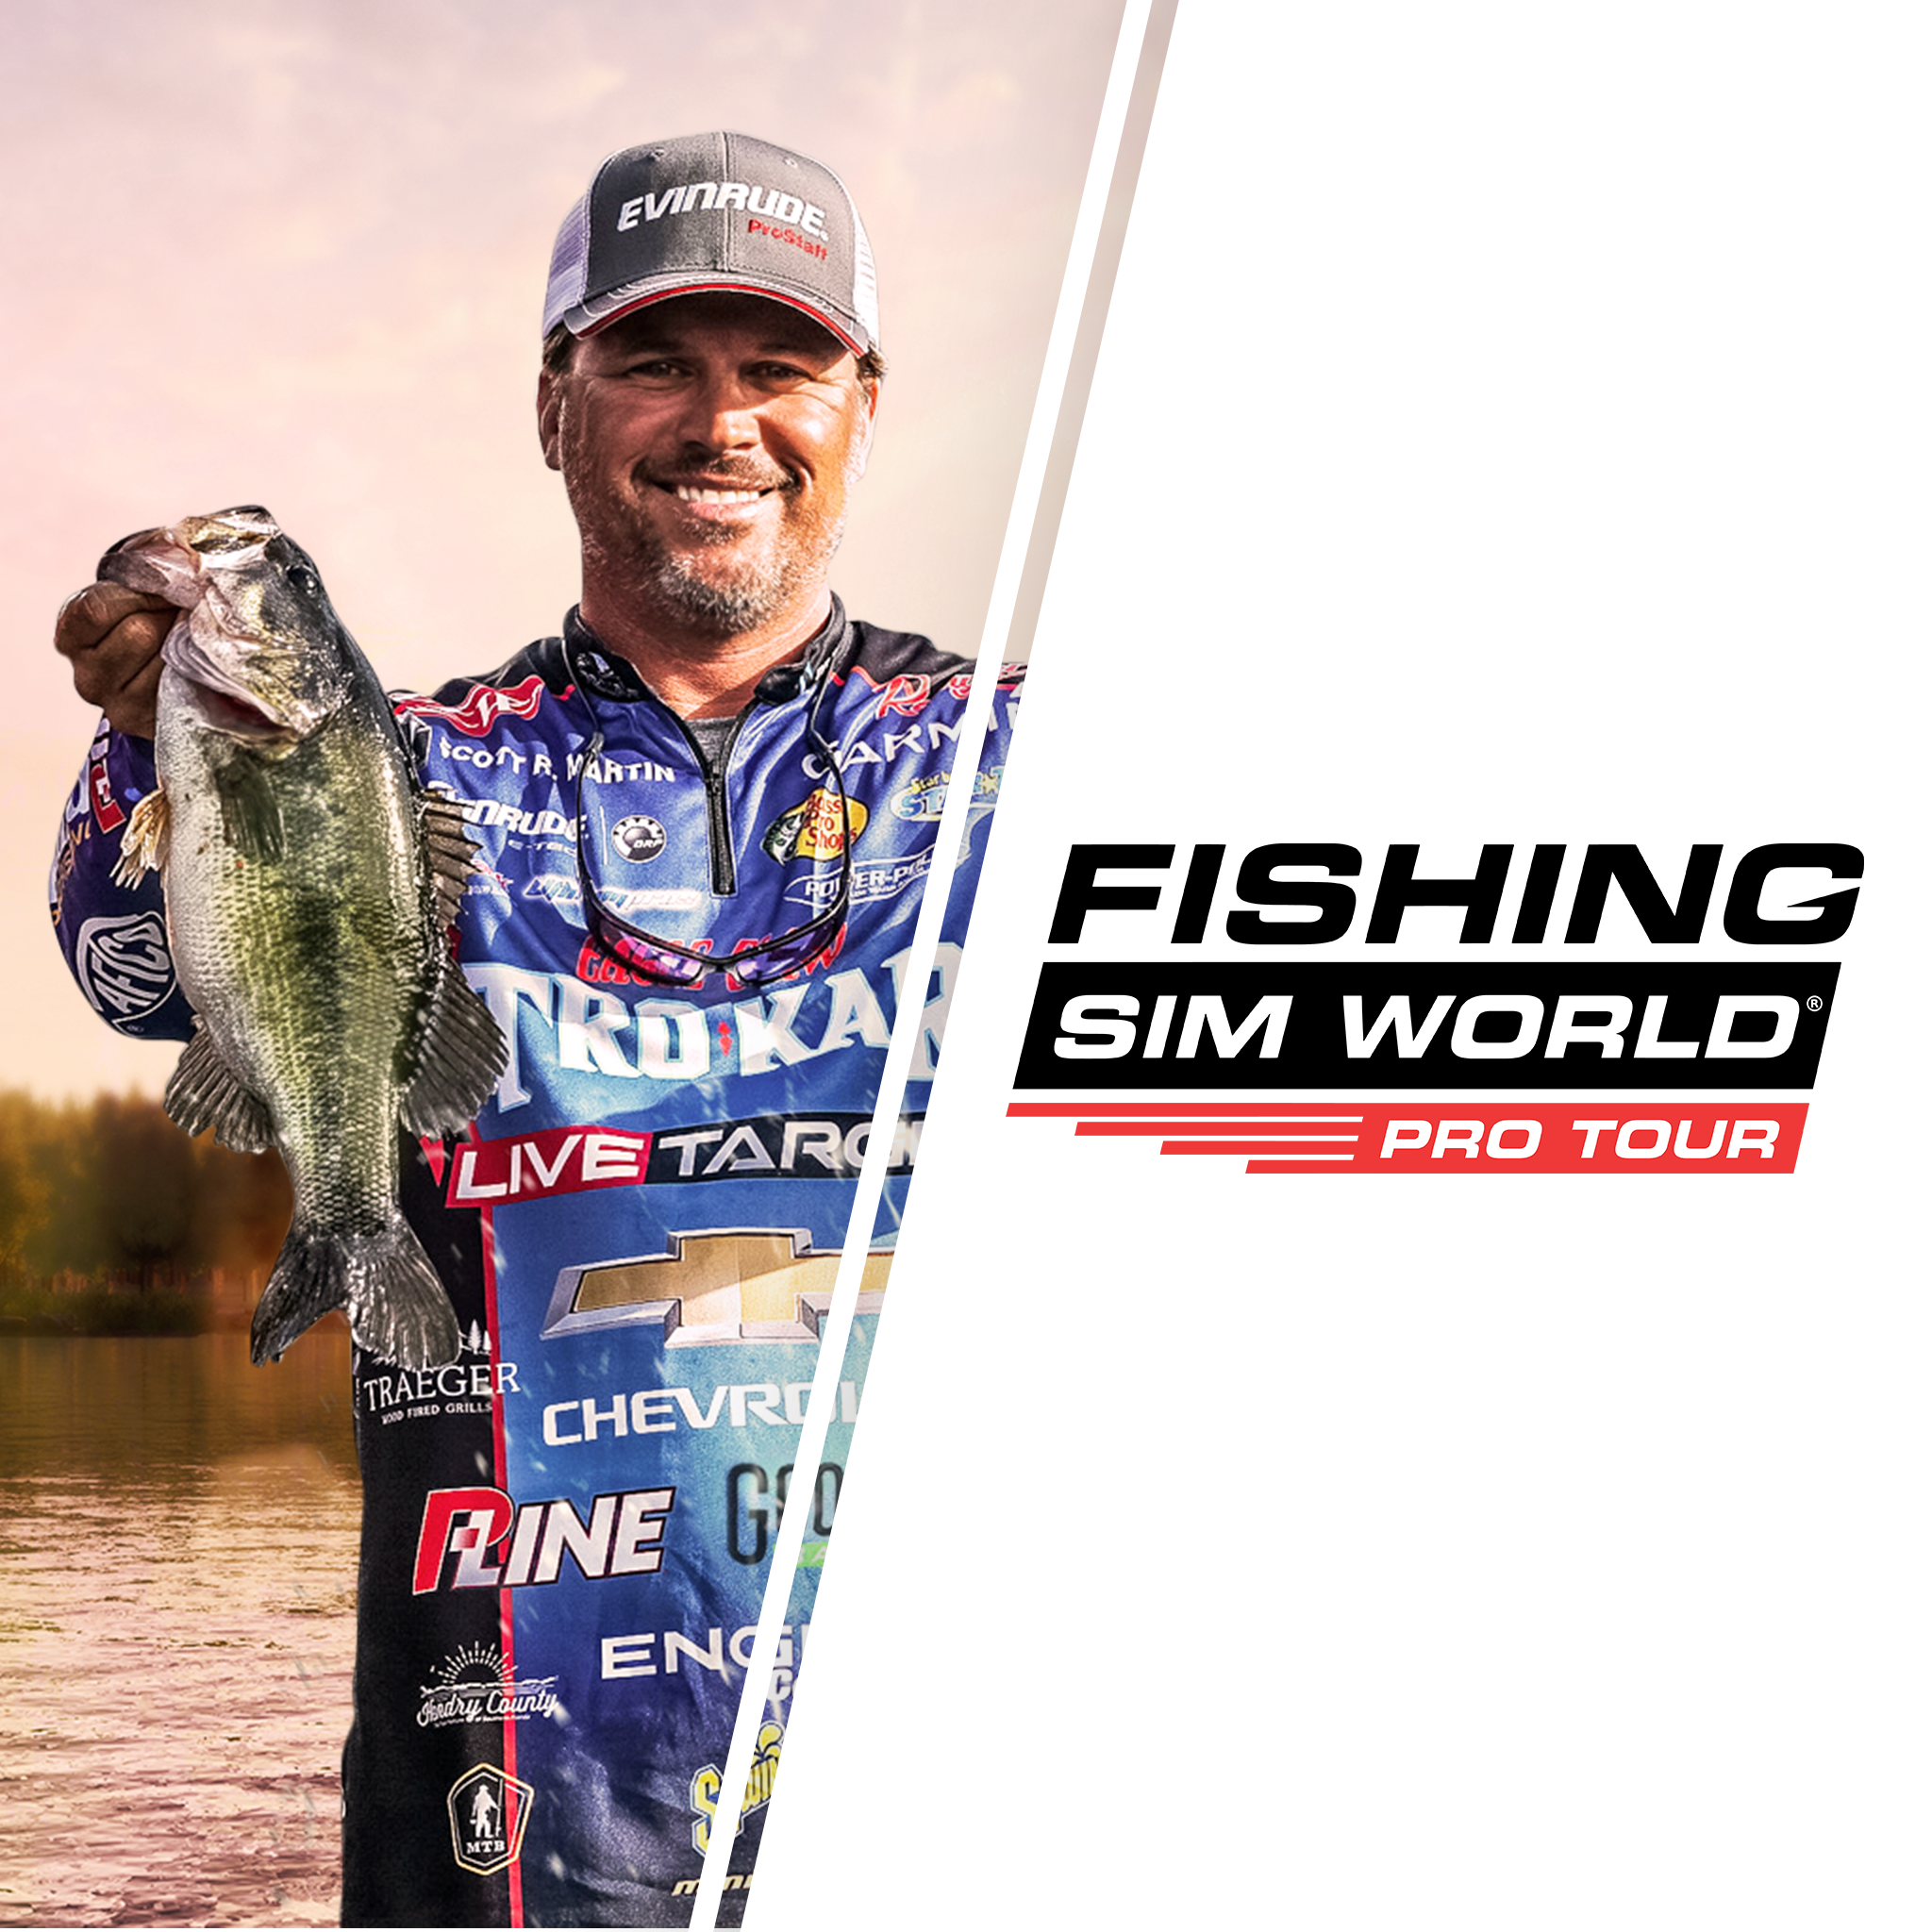 Fishing Sim World®: Pro Tour